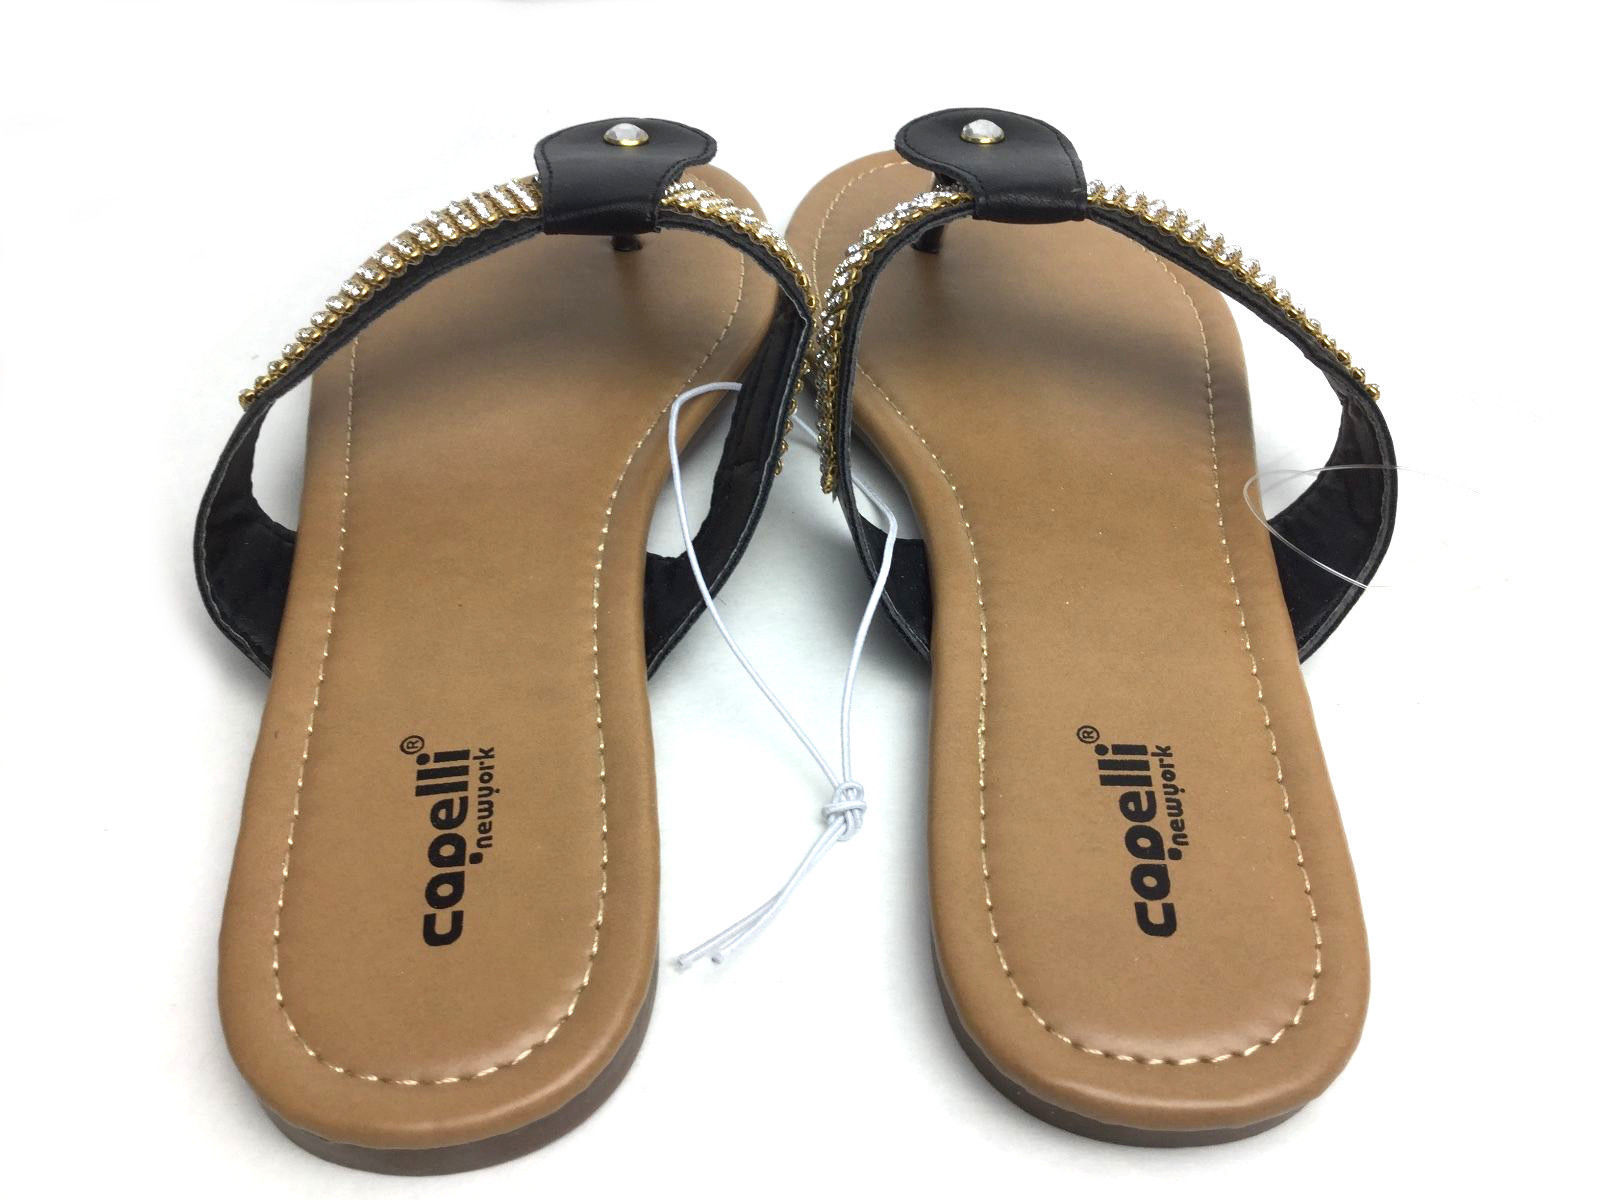 Capelli Women's Black Fancy Embellished Sandals Size 8 Jeweled Flip Flops